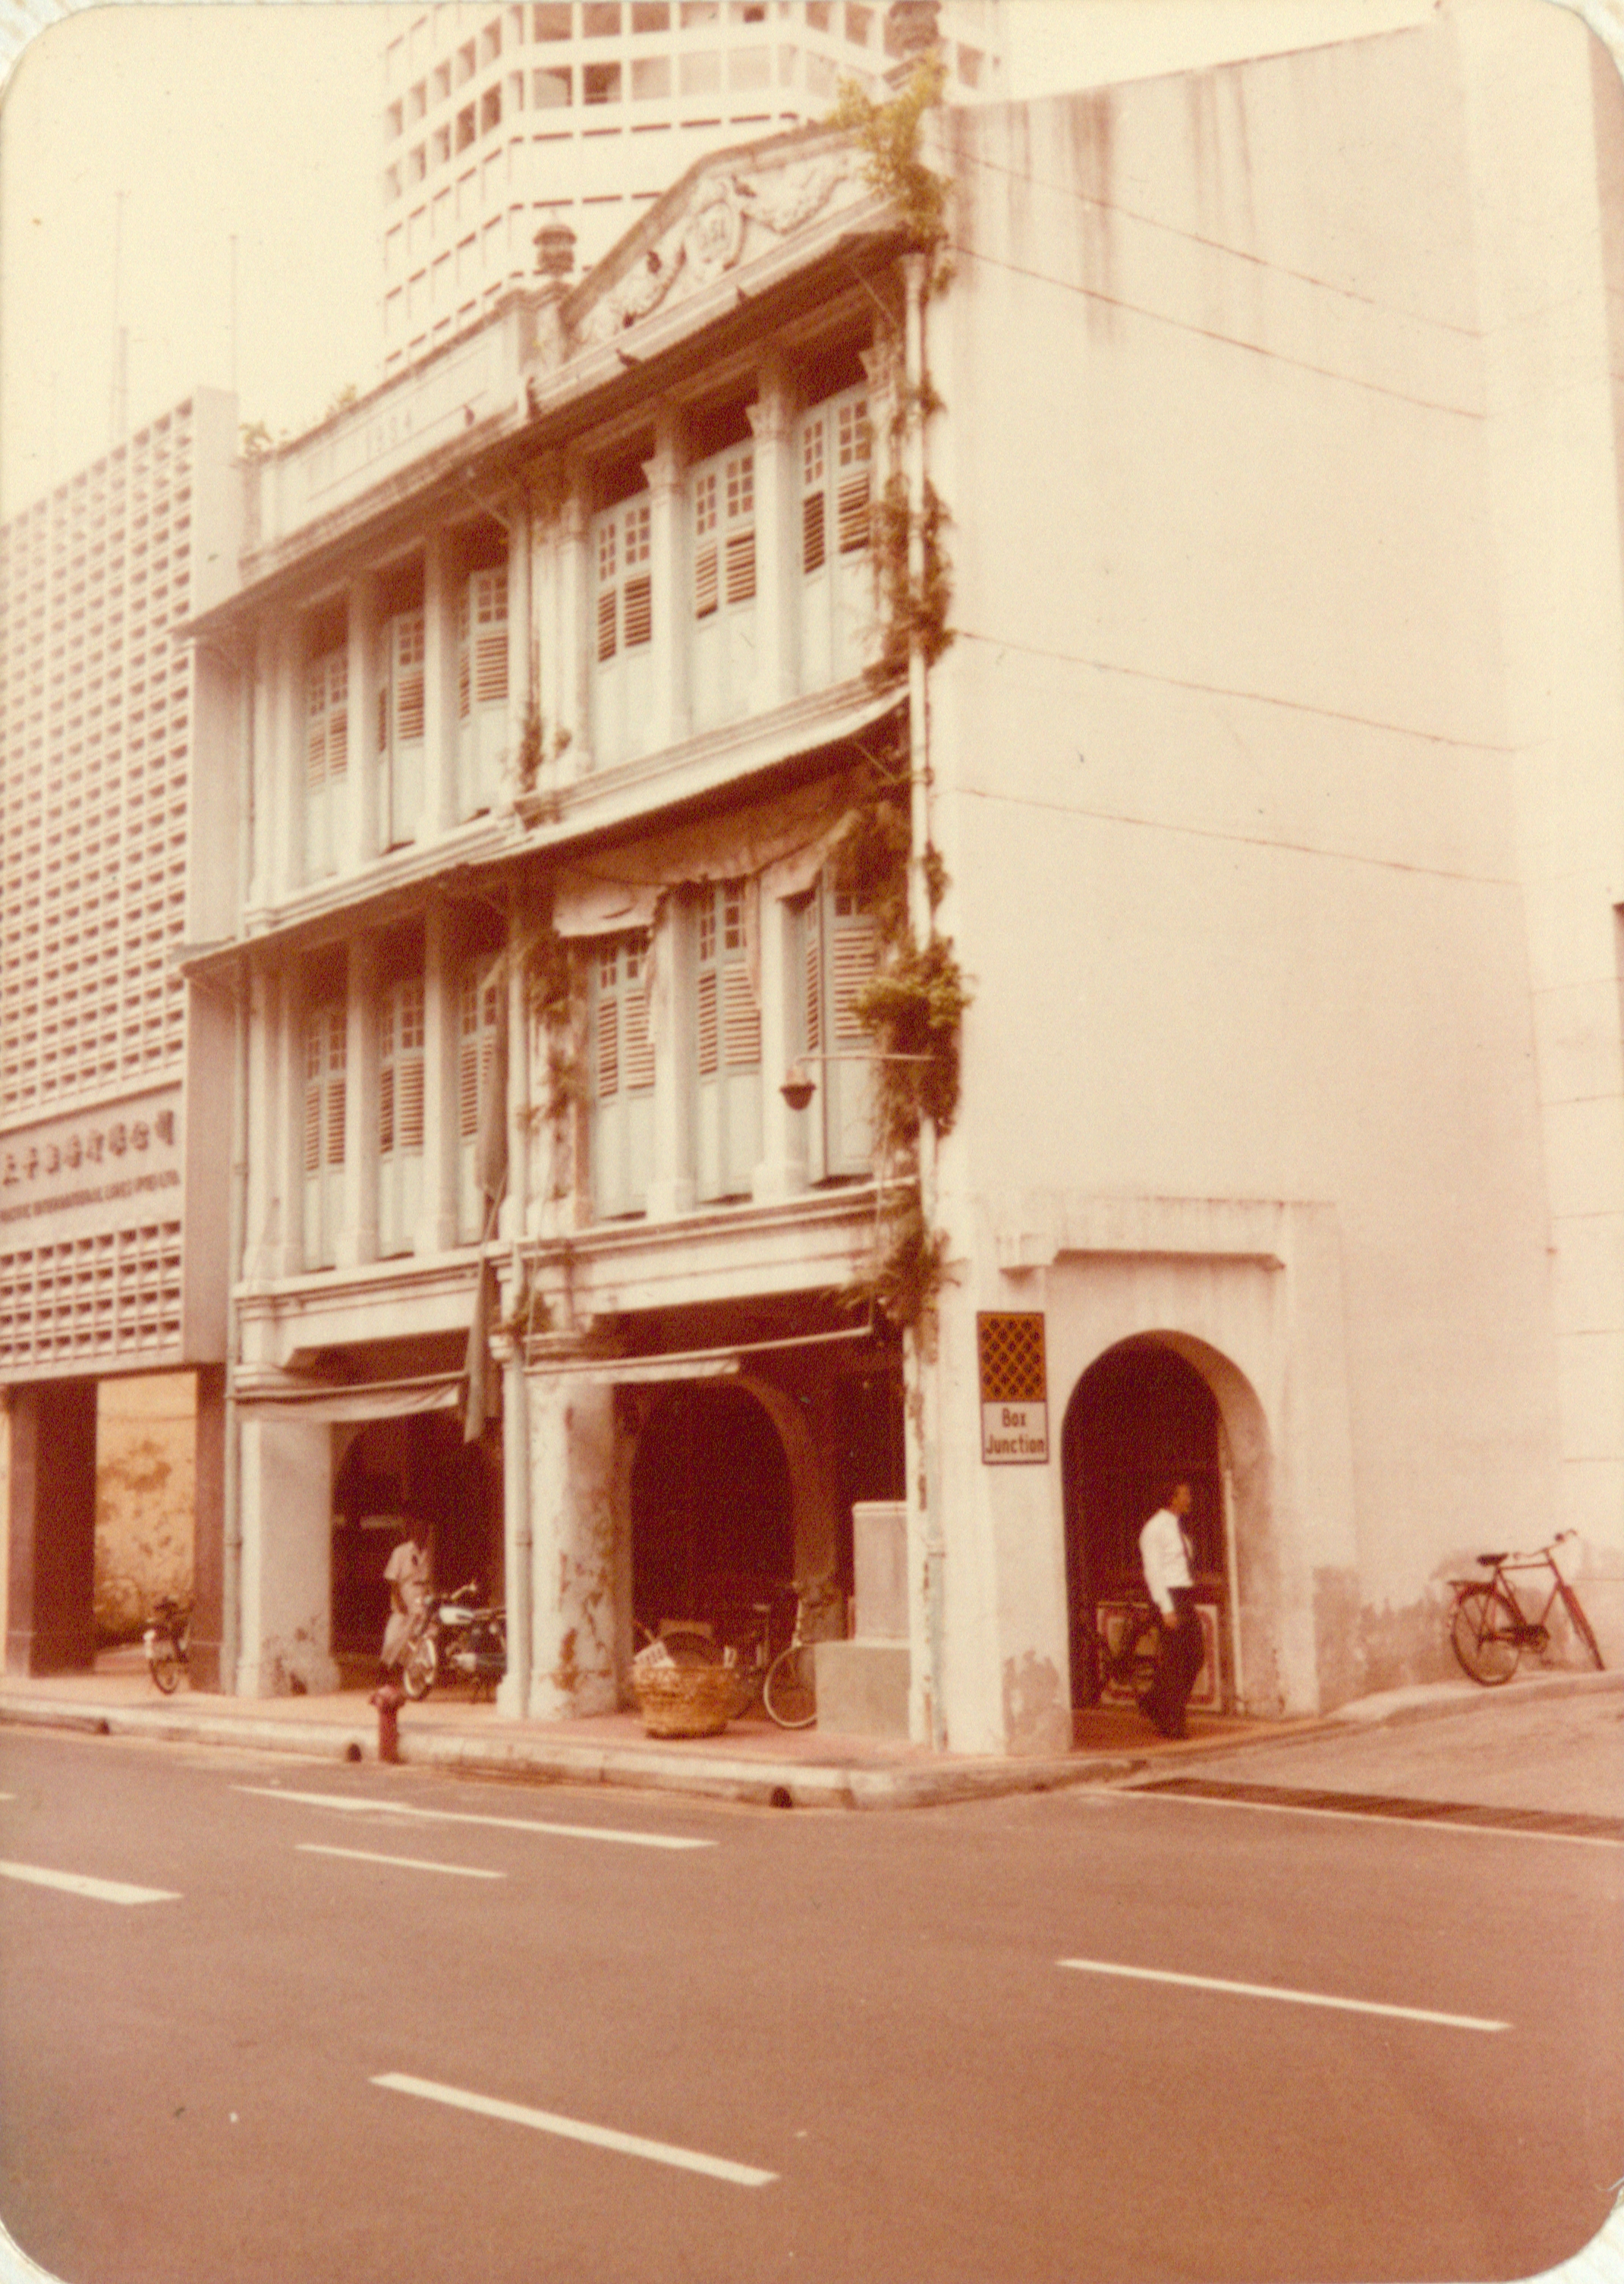 The building where the kittengi at 49 Market Street was located. Nachiappa Chettiar Collection, courtesy of National Archives of Singapore